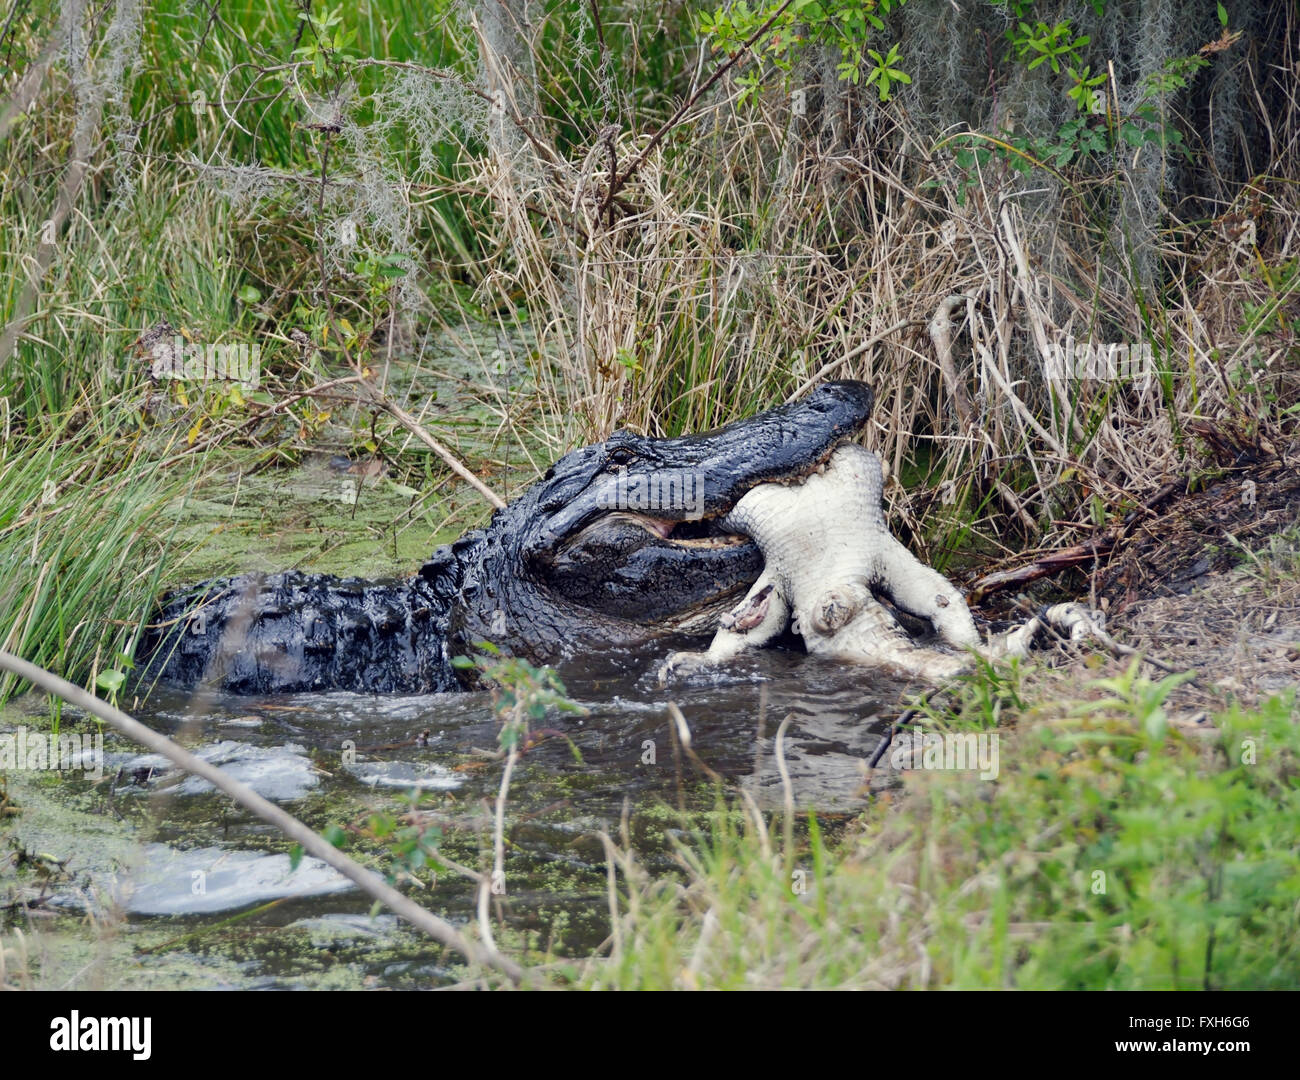 Large Florida Alligator Eating An Alligator Stock Photo 102411238